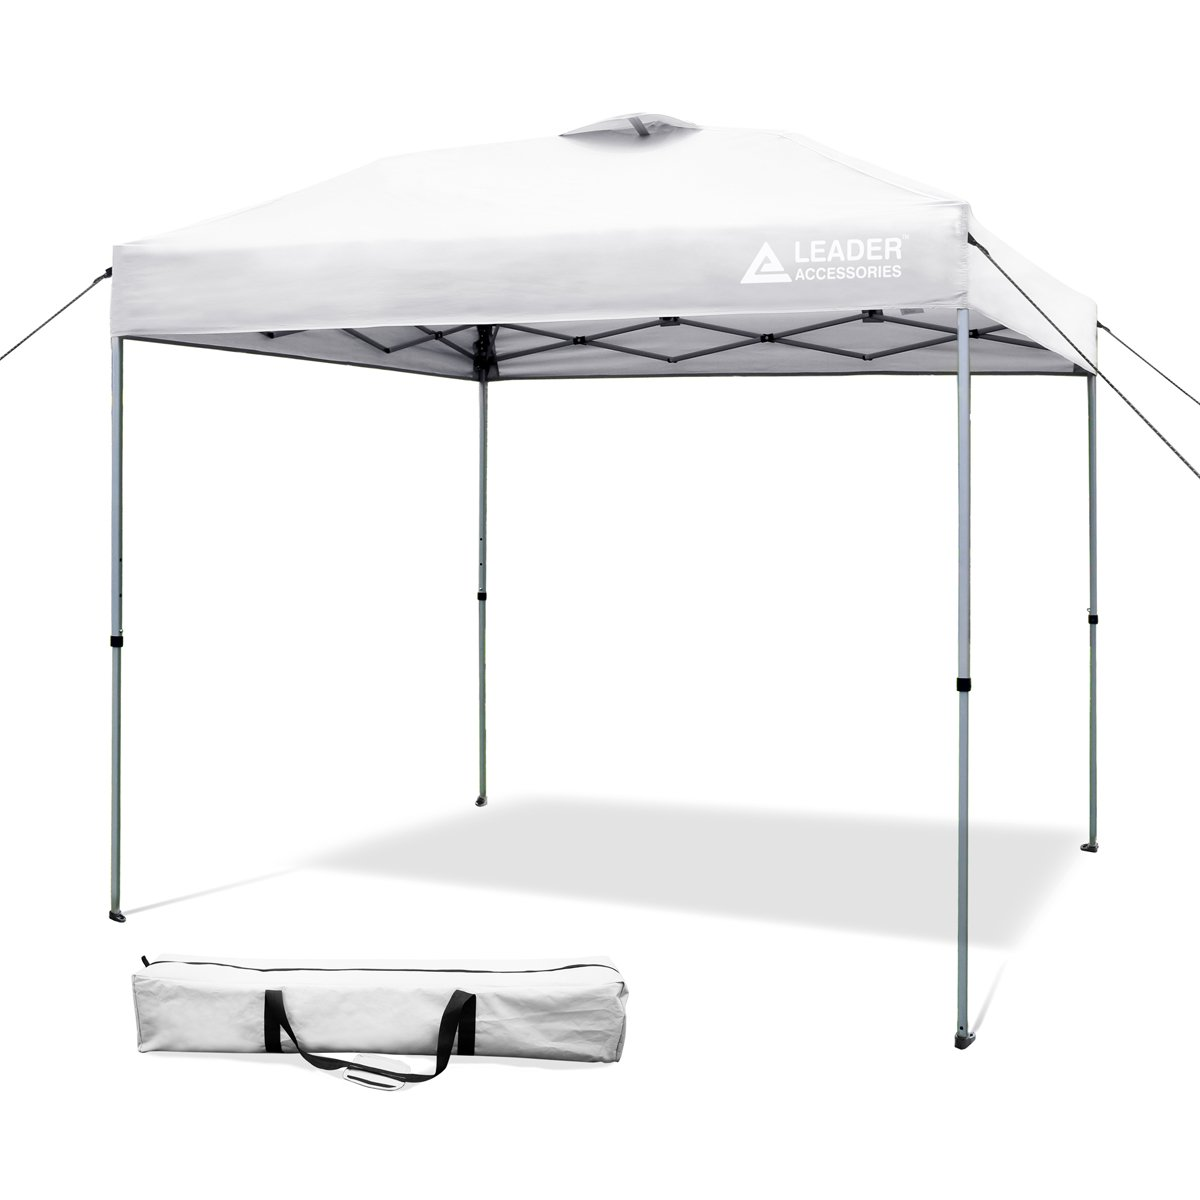 Leader Accessories 8' x 8' Straight Wall Instant Canopy with Carry Bag 8' x 8' Straight Wall Instant Canopy with Carry Bag (Silver)